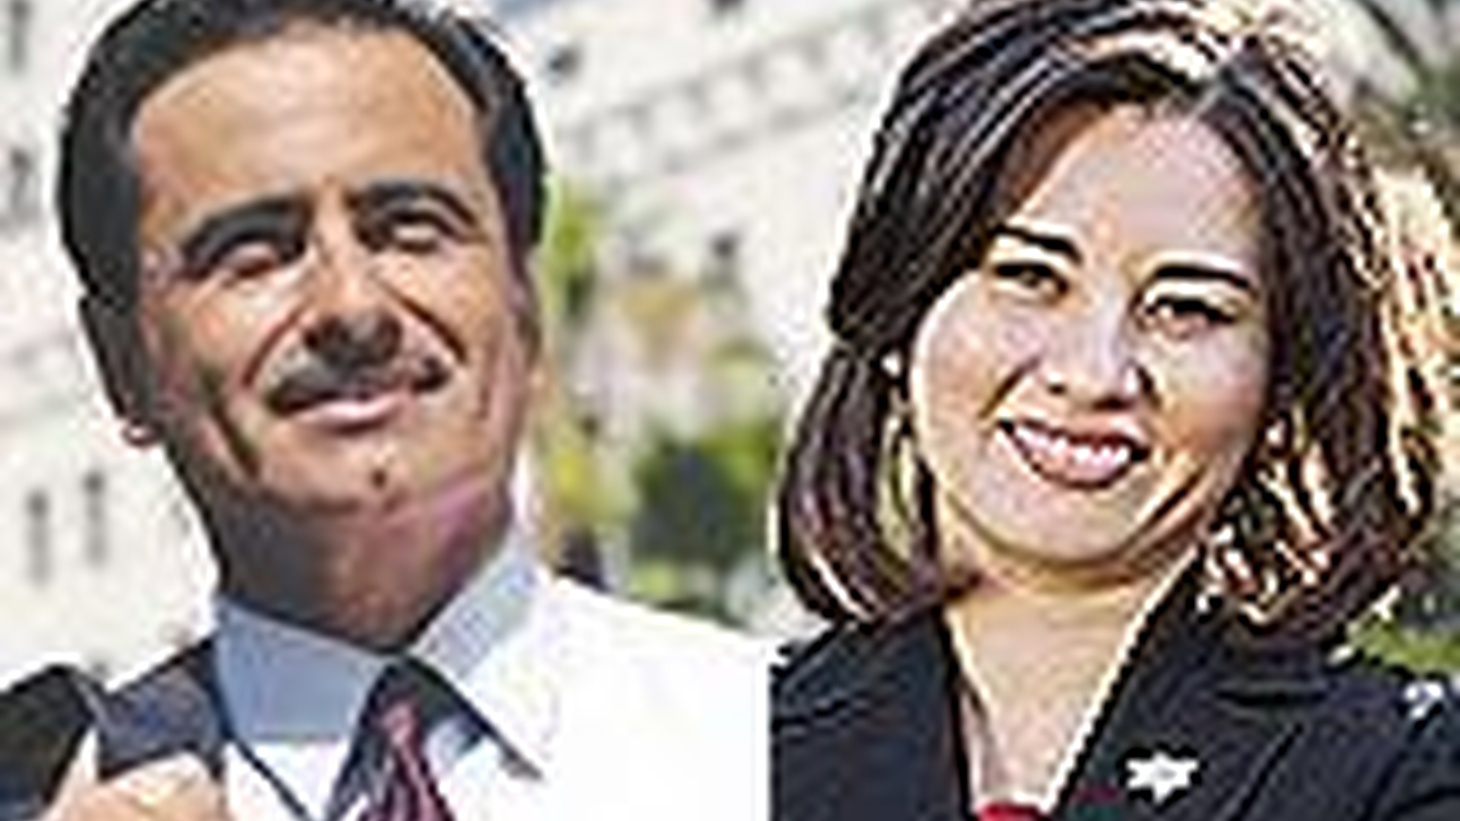 Campaigning for LA School Board seats in tomorrow's elections will cost millions of dollars, as Mayor Villaraigosa attempts to take control. Measure L could change the way the Board does business.  Plus, a look at a City Council race in the San Fernando Valley.  We'll hear from Richard Alarcón, who's running less than four months after he was elected to the State Assembly, and his major opponent.